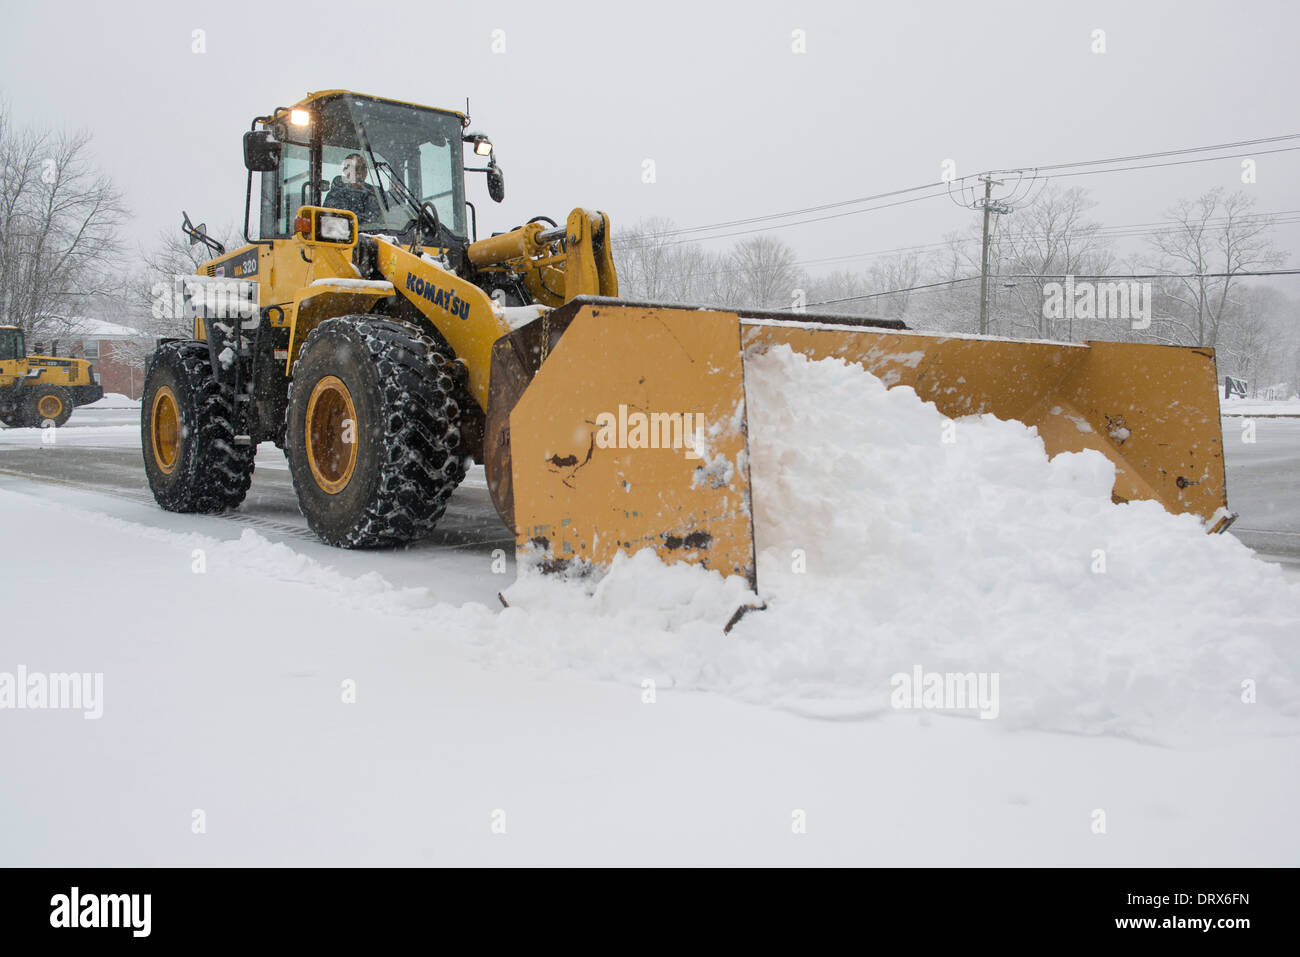 Plowing snow with Komatsu tractor at SCSU. - Stock Image